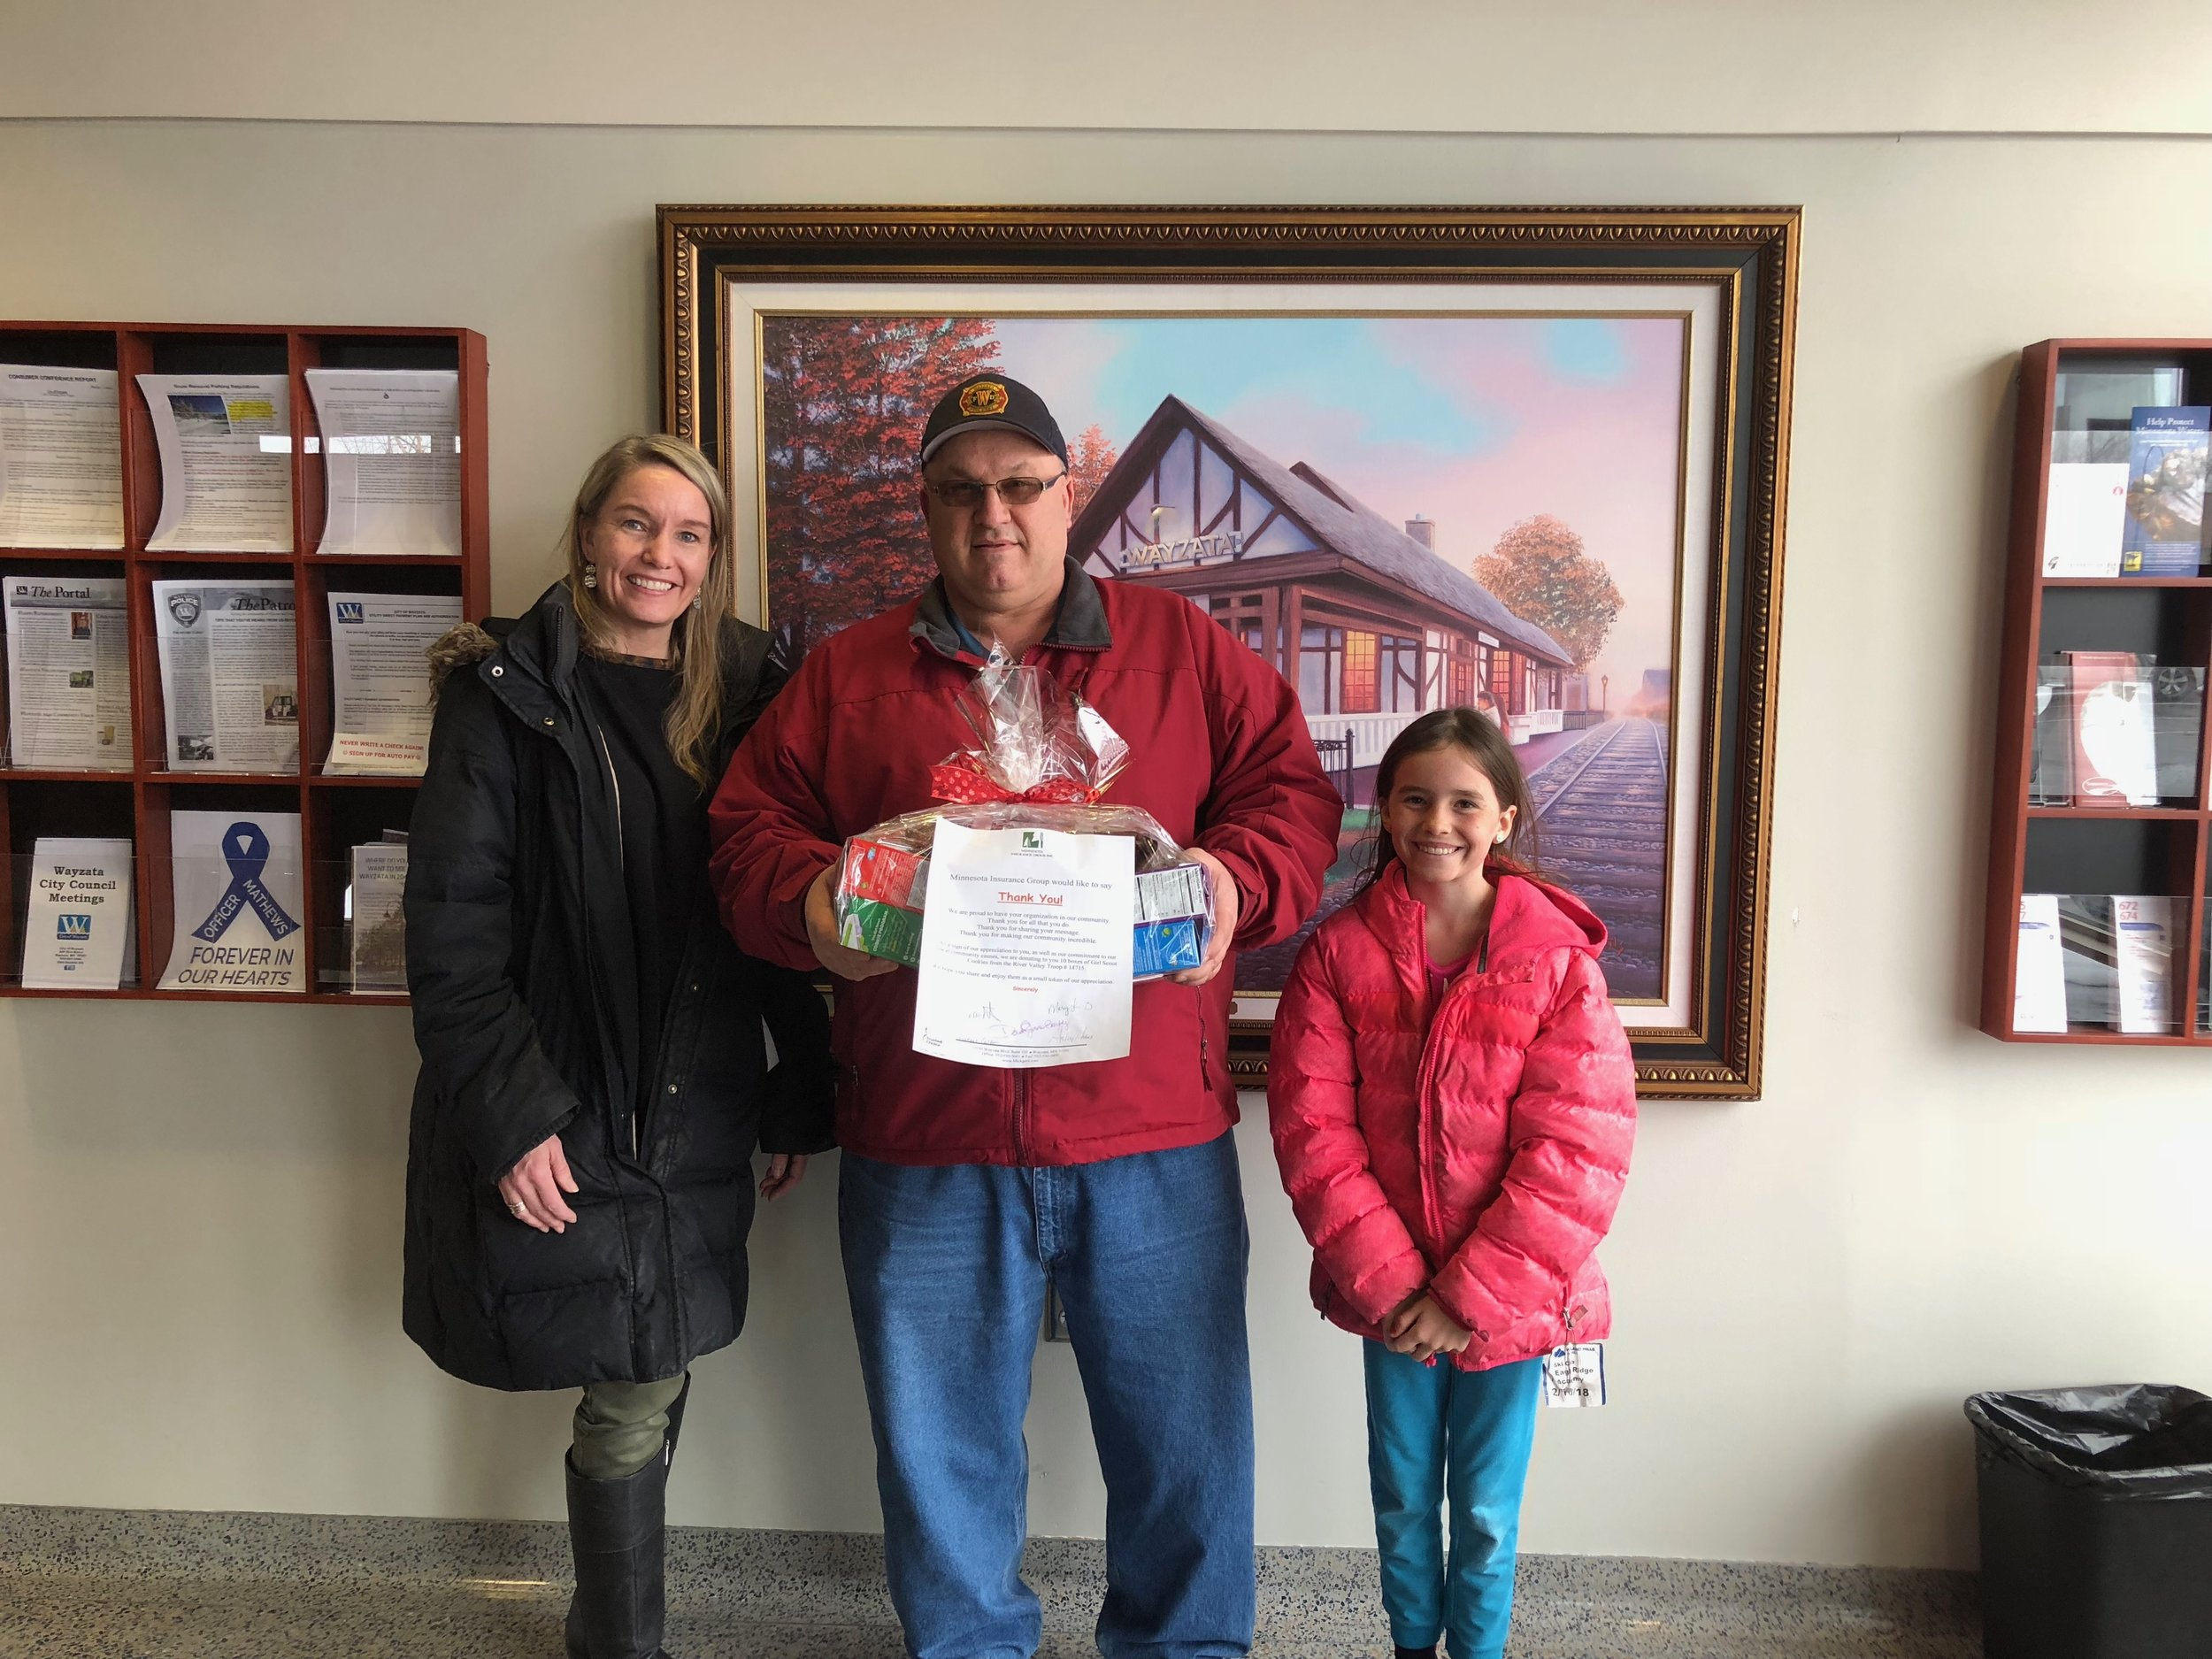 Donating Girl Scout cookies to Wayzata Fire Station